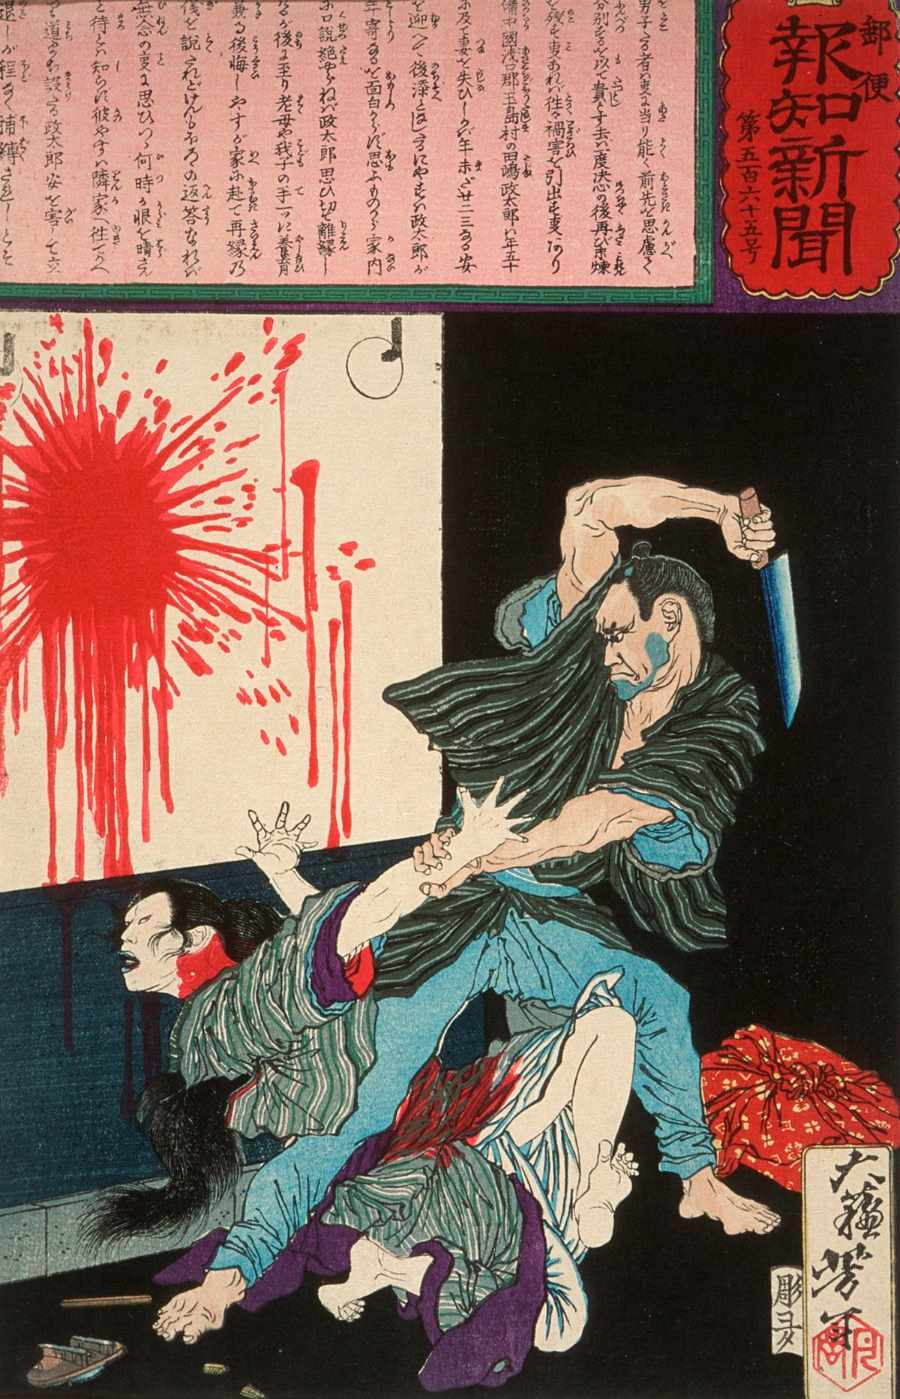 Tsukioka Yoshitoshi Color Woodblock Print blood splattered wall man wielding knife fearful woman